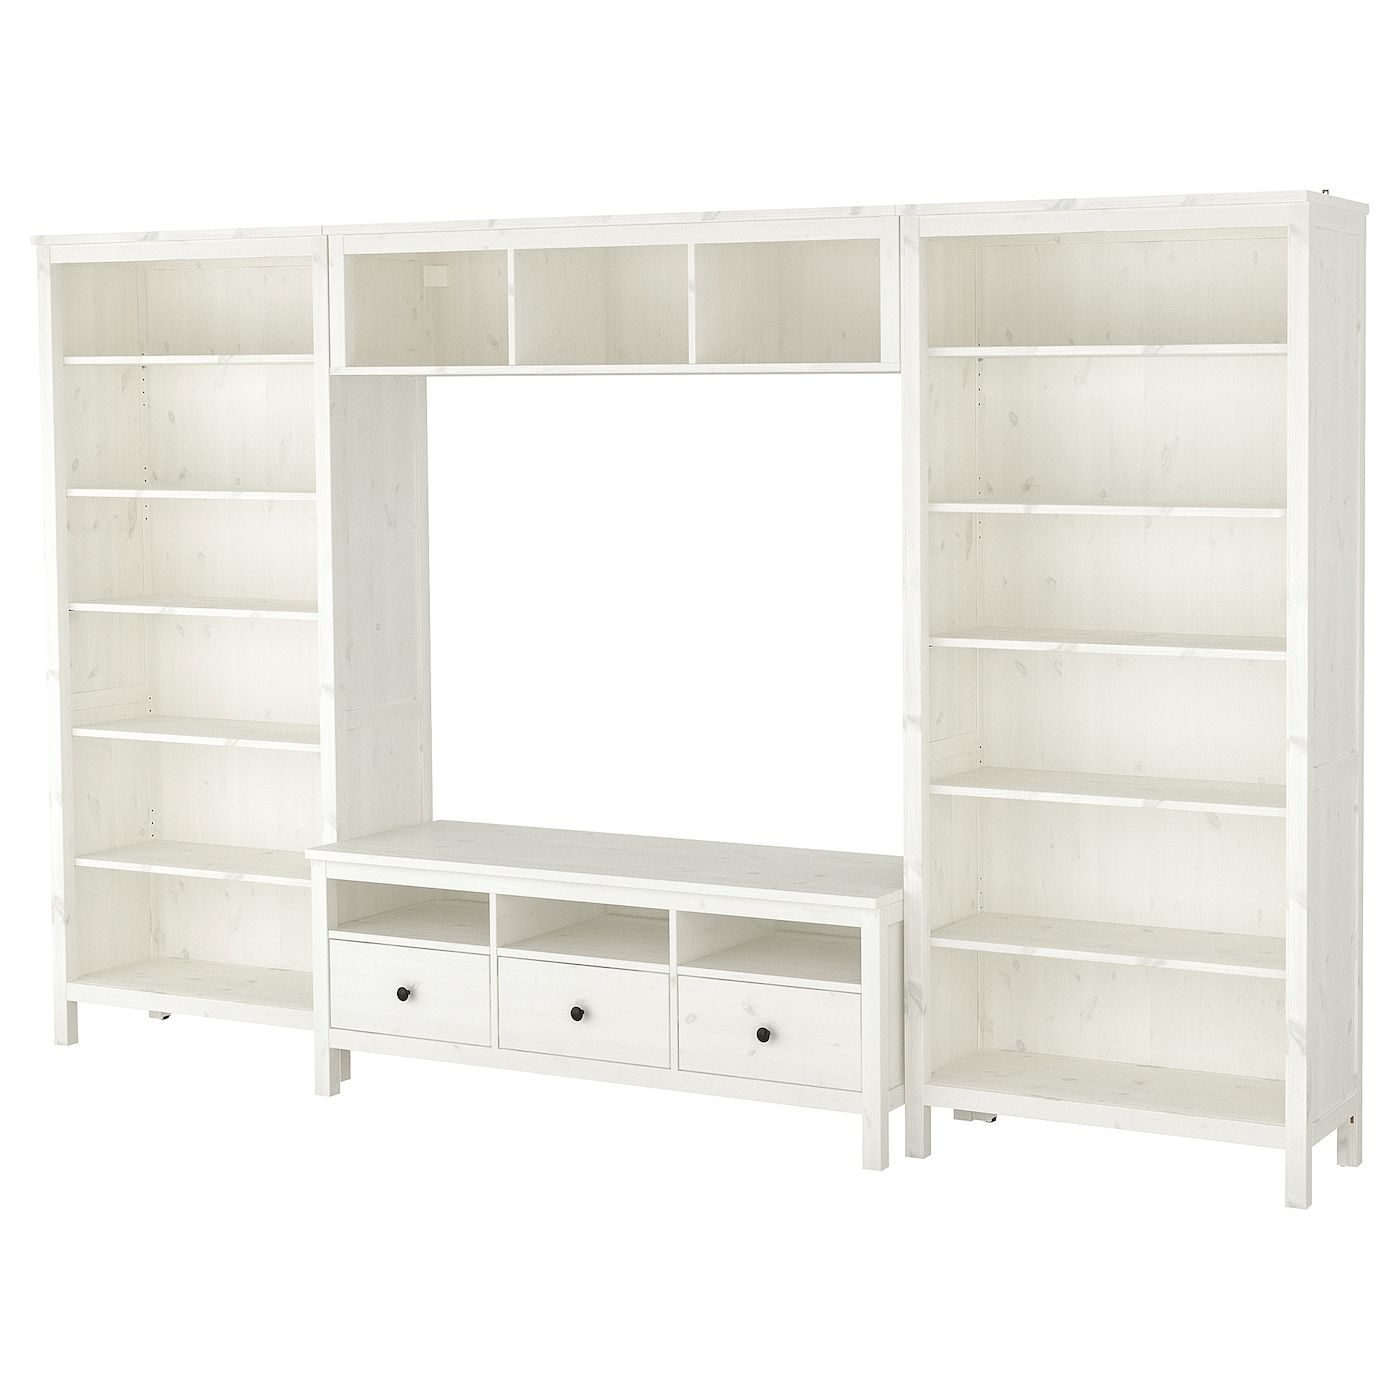 Hemnes Tv Kast.Hemnes Tv Meubel Combi Wit Gebeitst 326x197 Cm In 2020 Tv